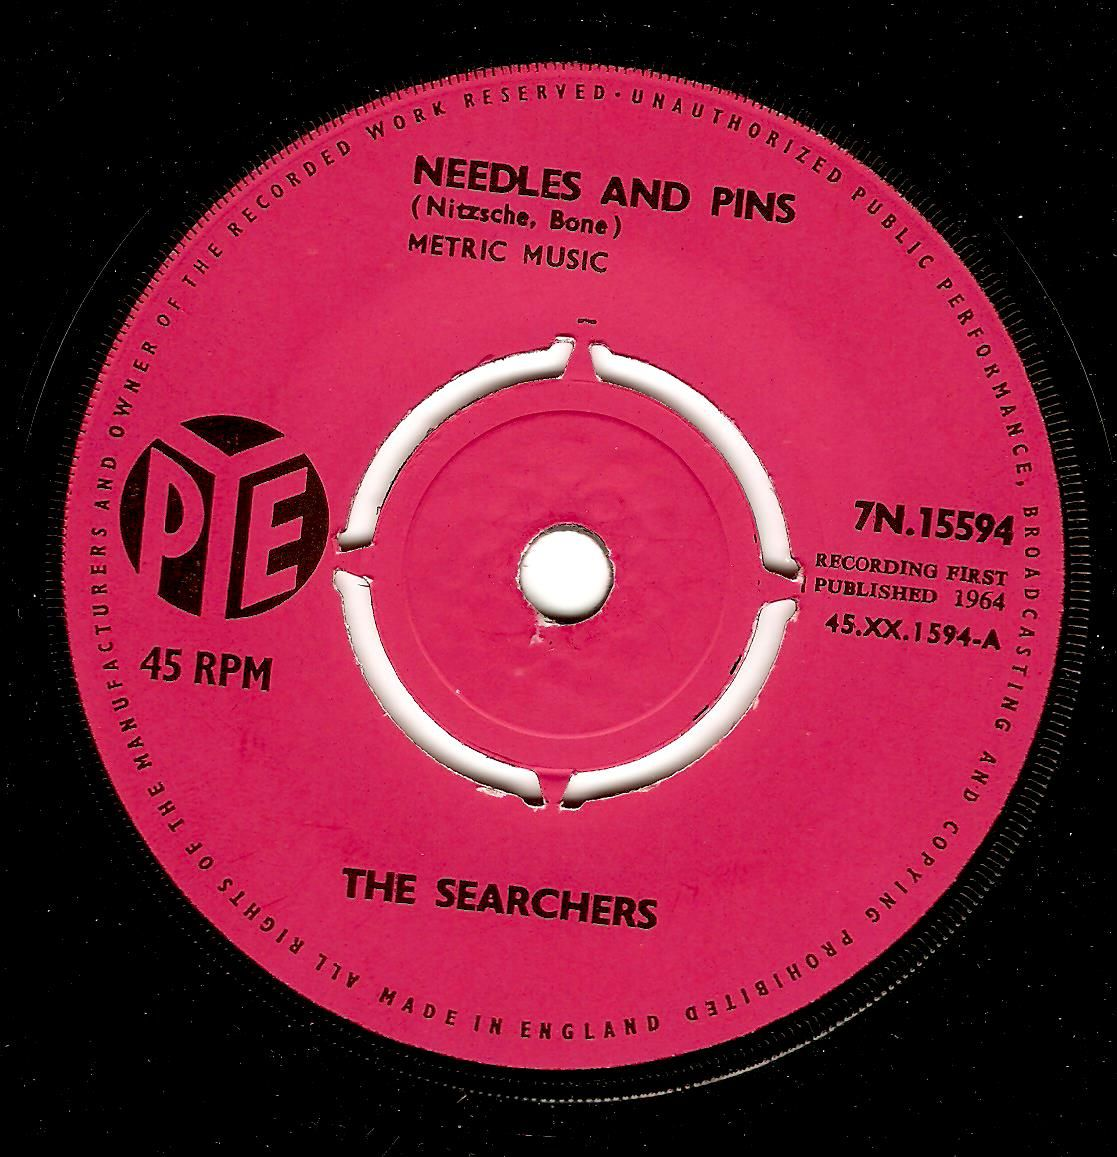 The Searchers Needles And Pins Vinyl Record 7 Inch Pye 1964